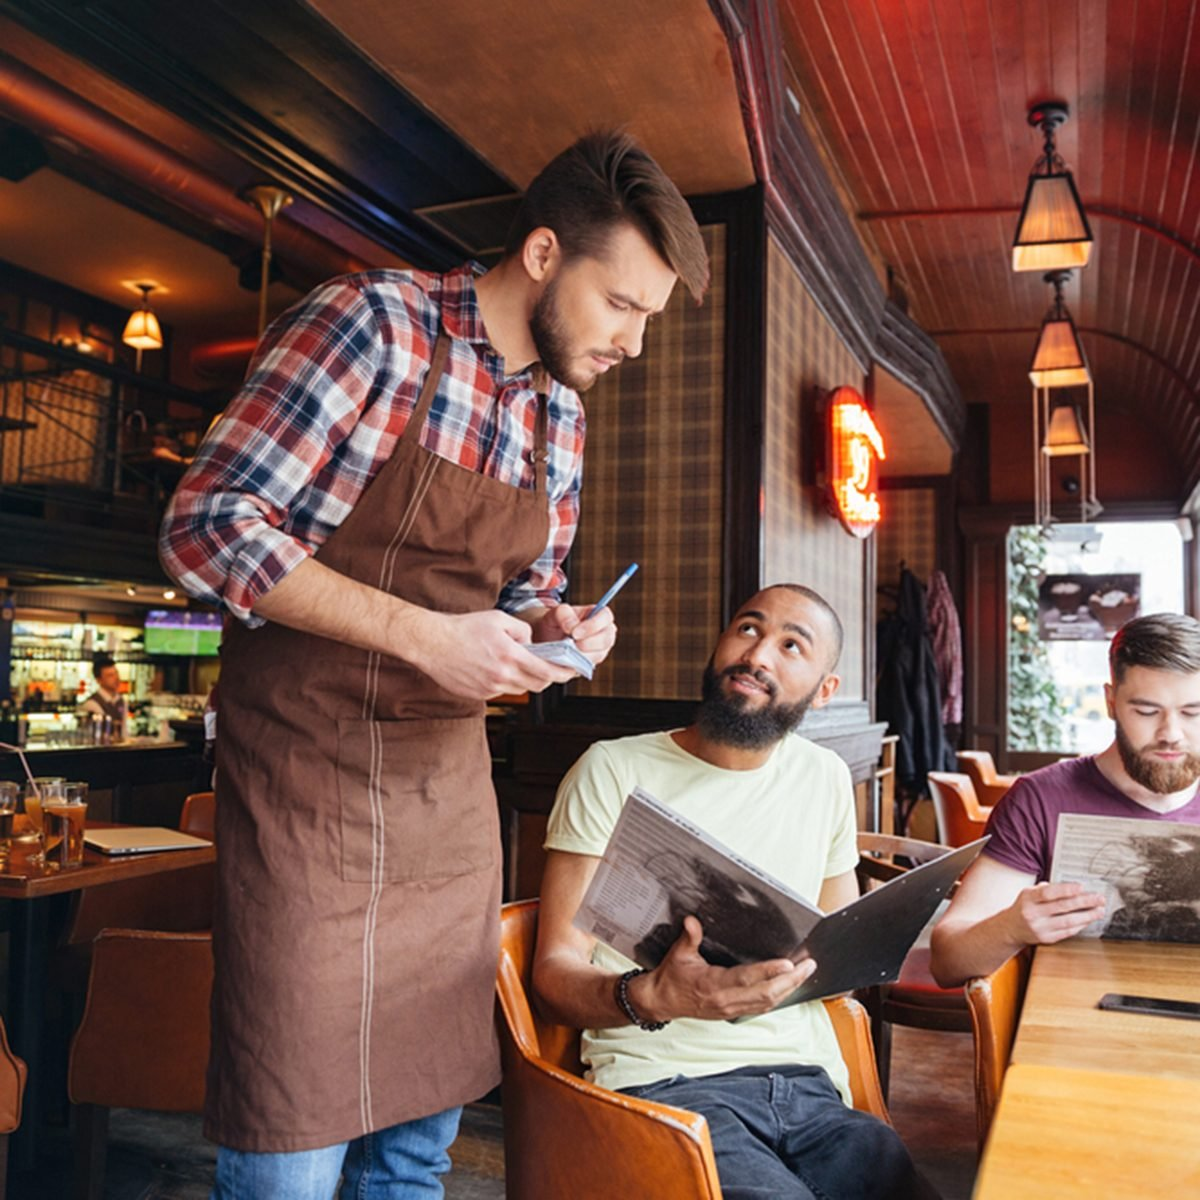 Serious concentrated young waiter standing and taking an order from two bearded handsome men in cafe